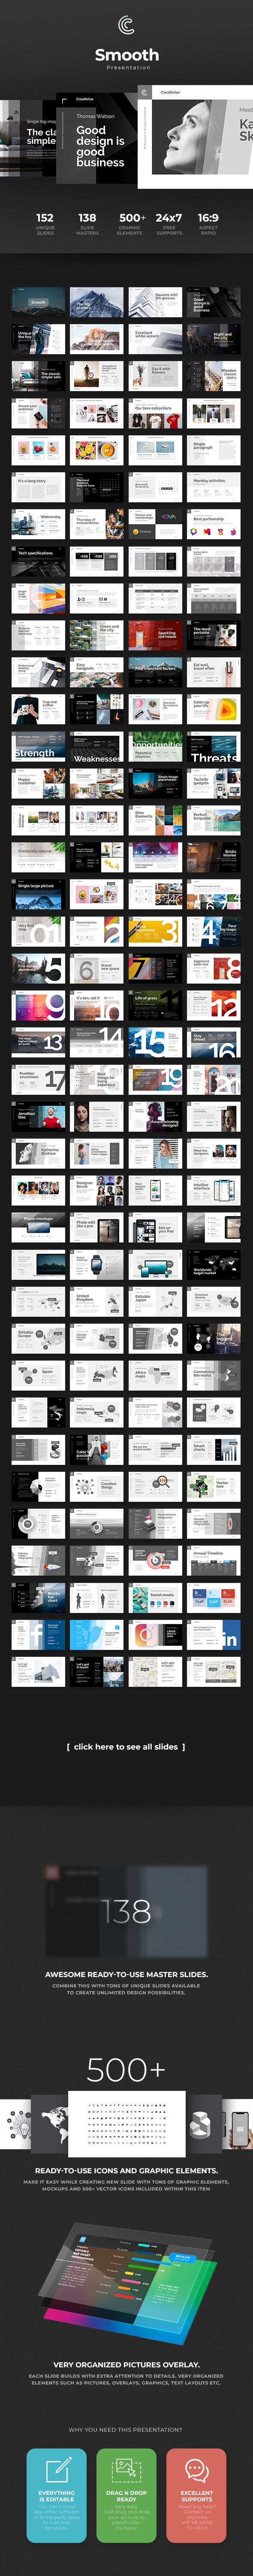 Smooth PowerPoint - PowerPoint Templates Presentation Templates